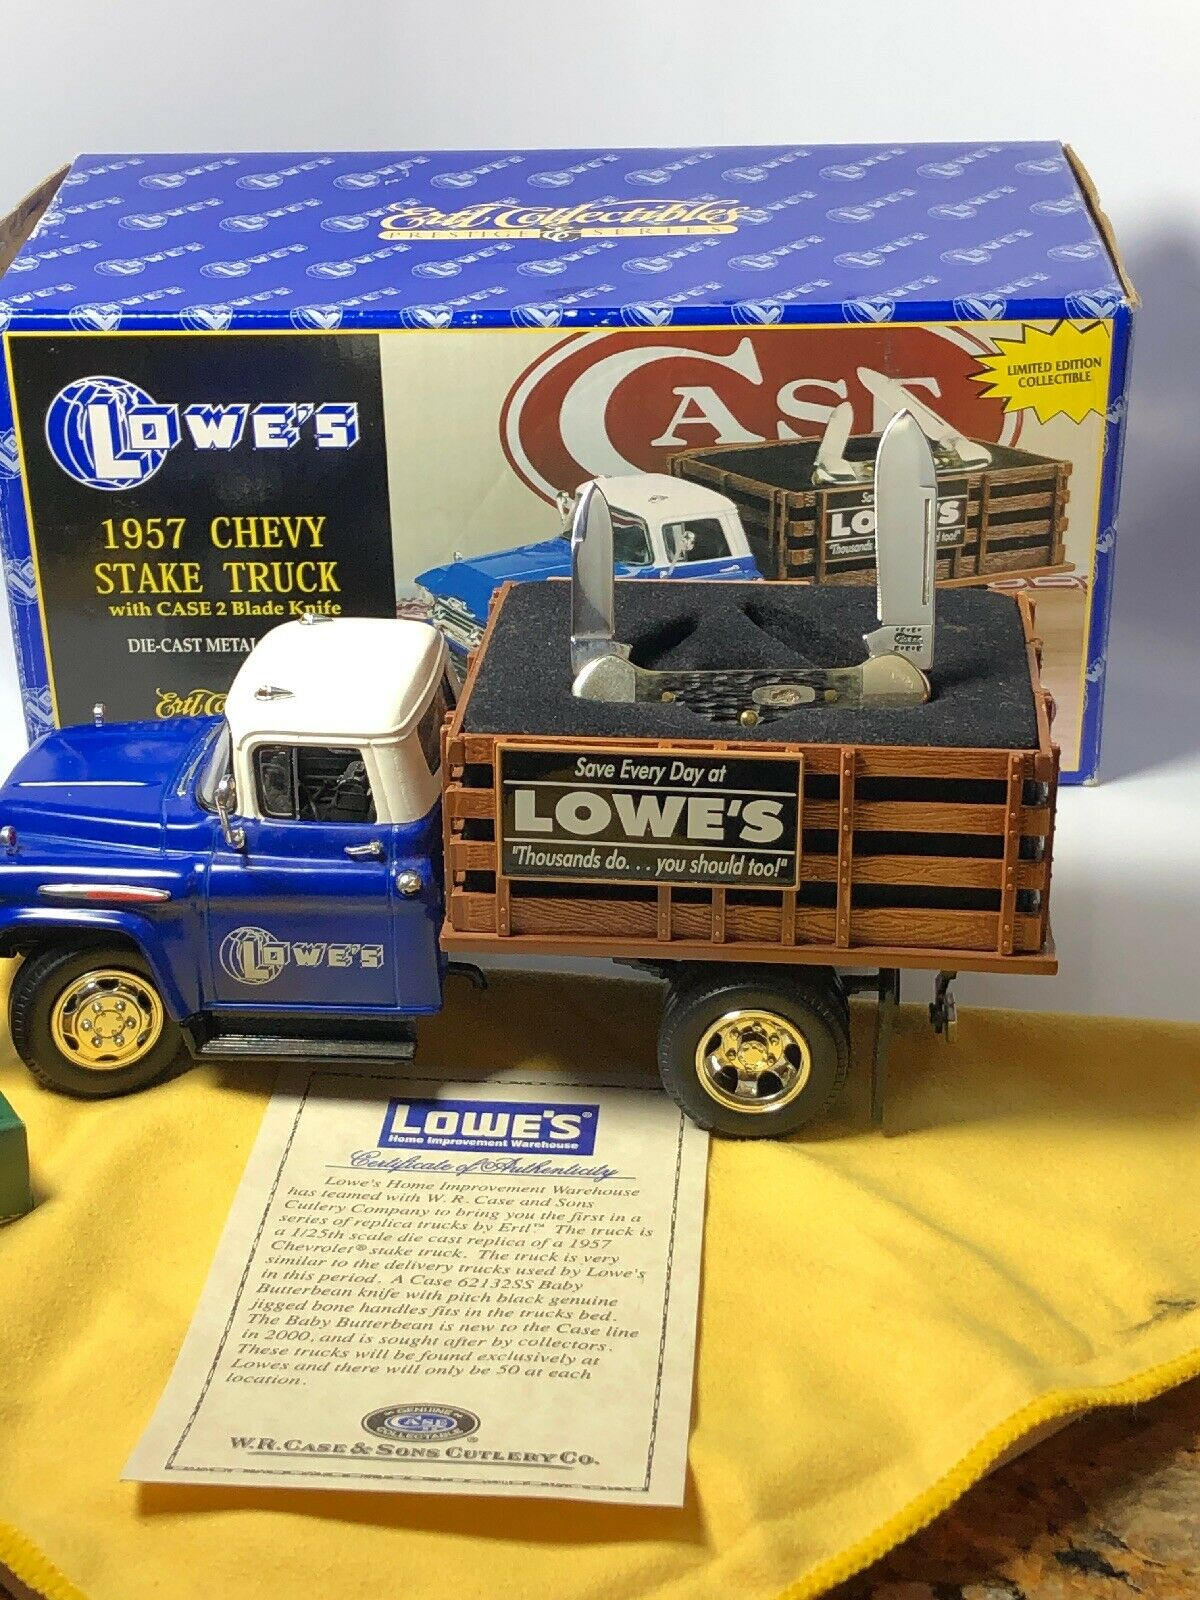 ERTL COLLECTIBLES LOWE'S 1957 CHEVY STAKE TRUCK WITH Fall BUTTERBEAN KNIFE